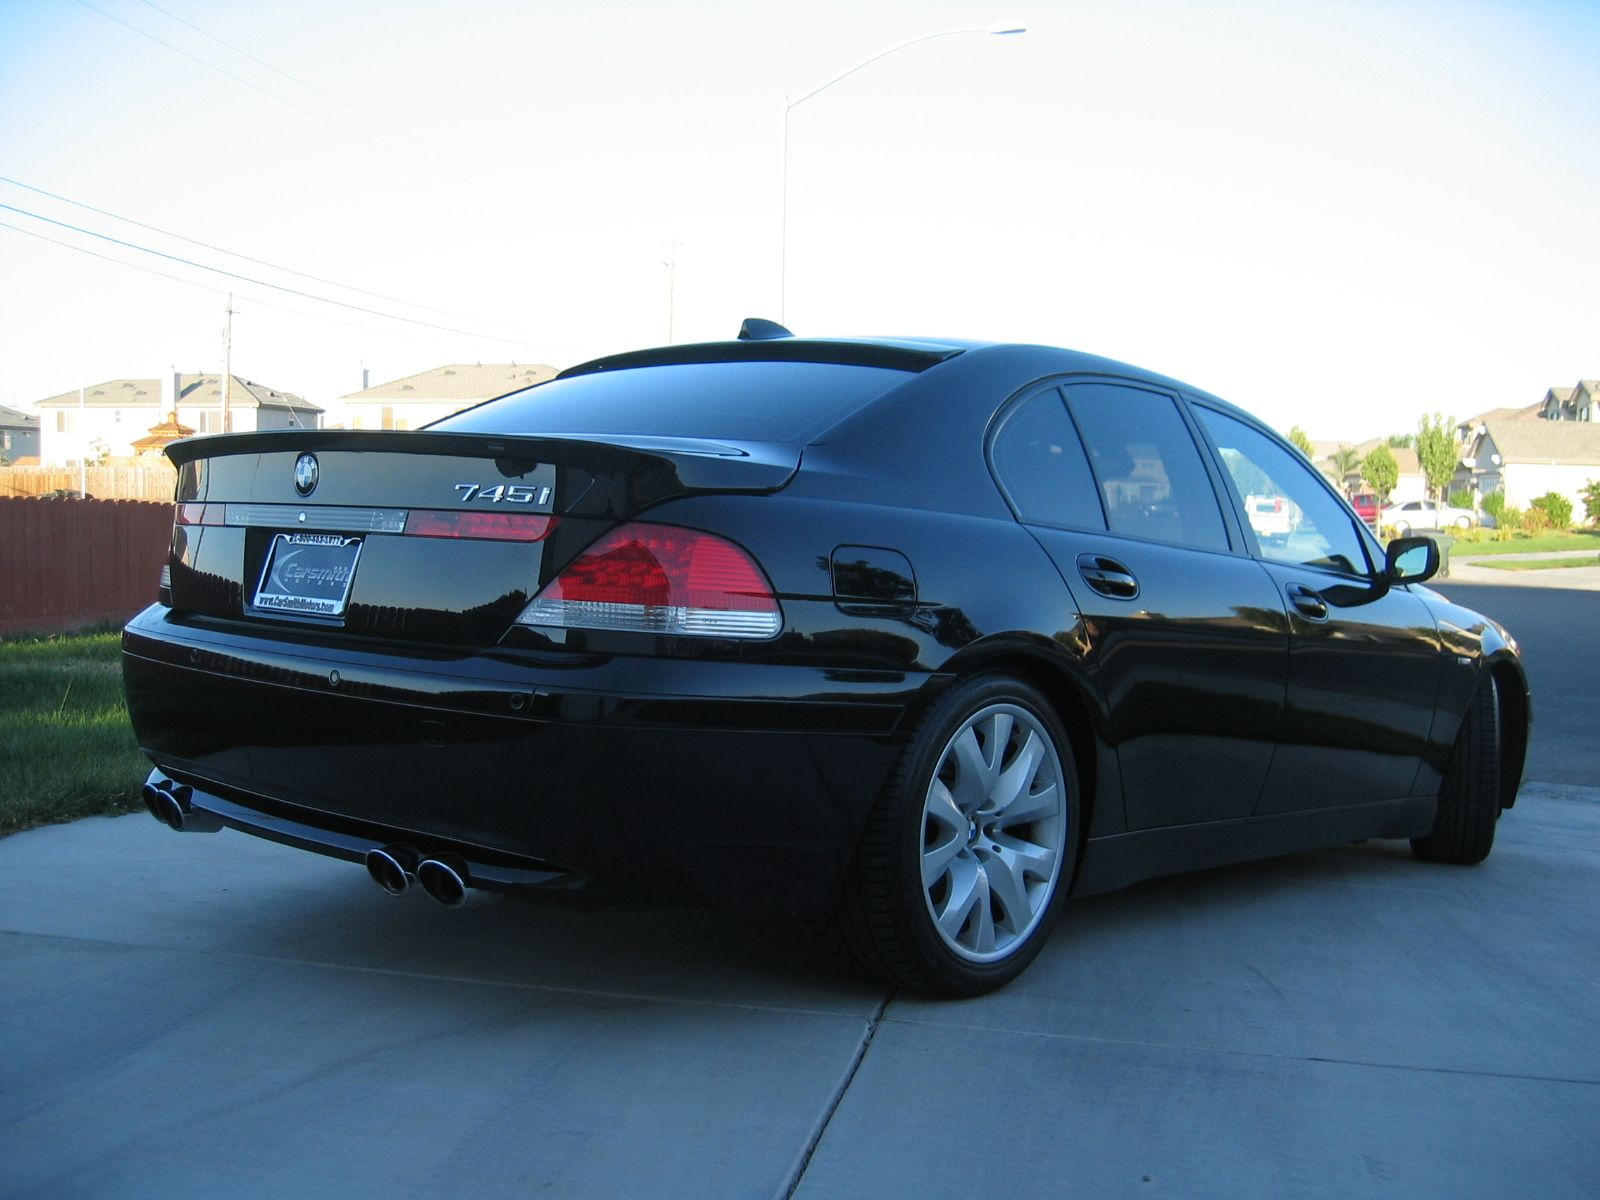 Bmw 745li i love the 7 series i have to get one now cars pinterest bmw cars and dream cars